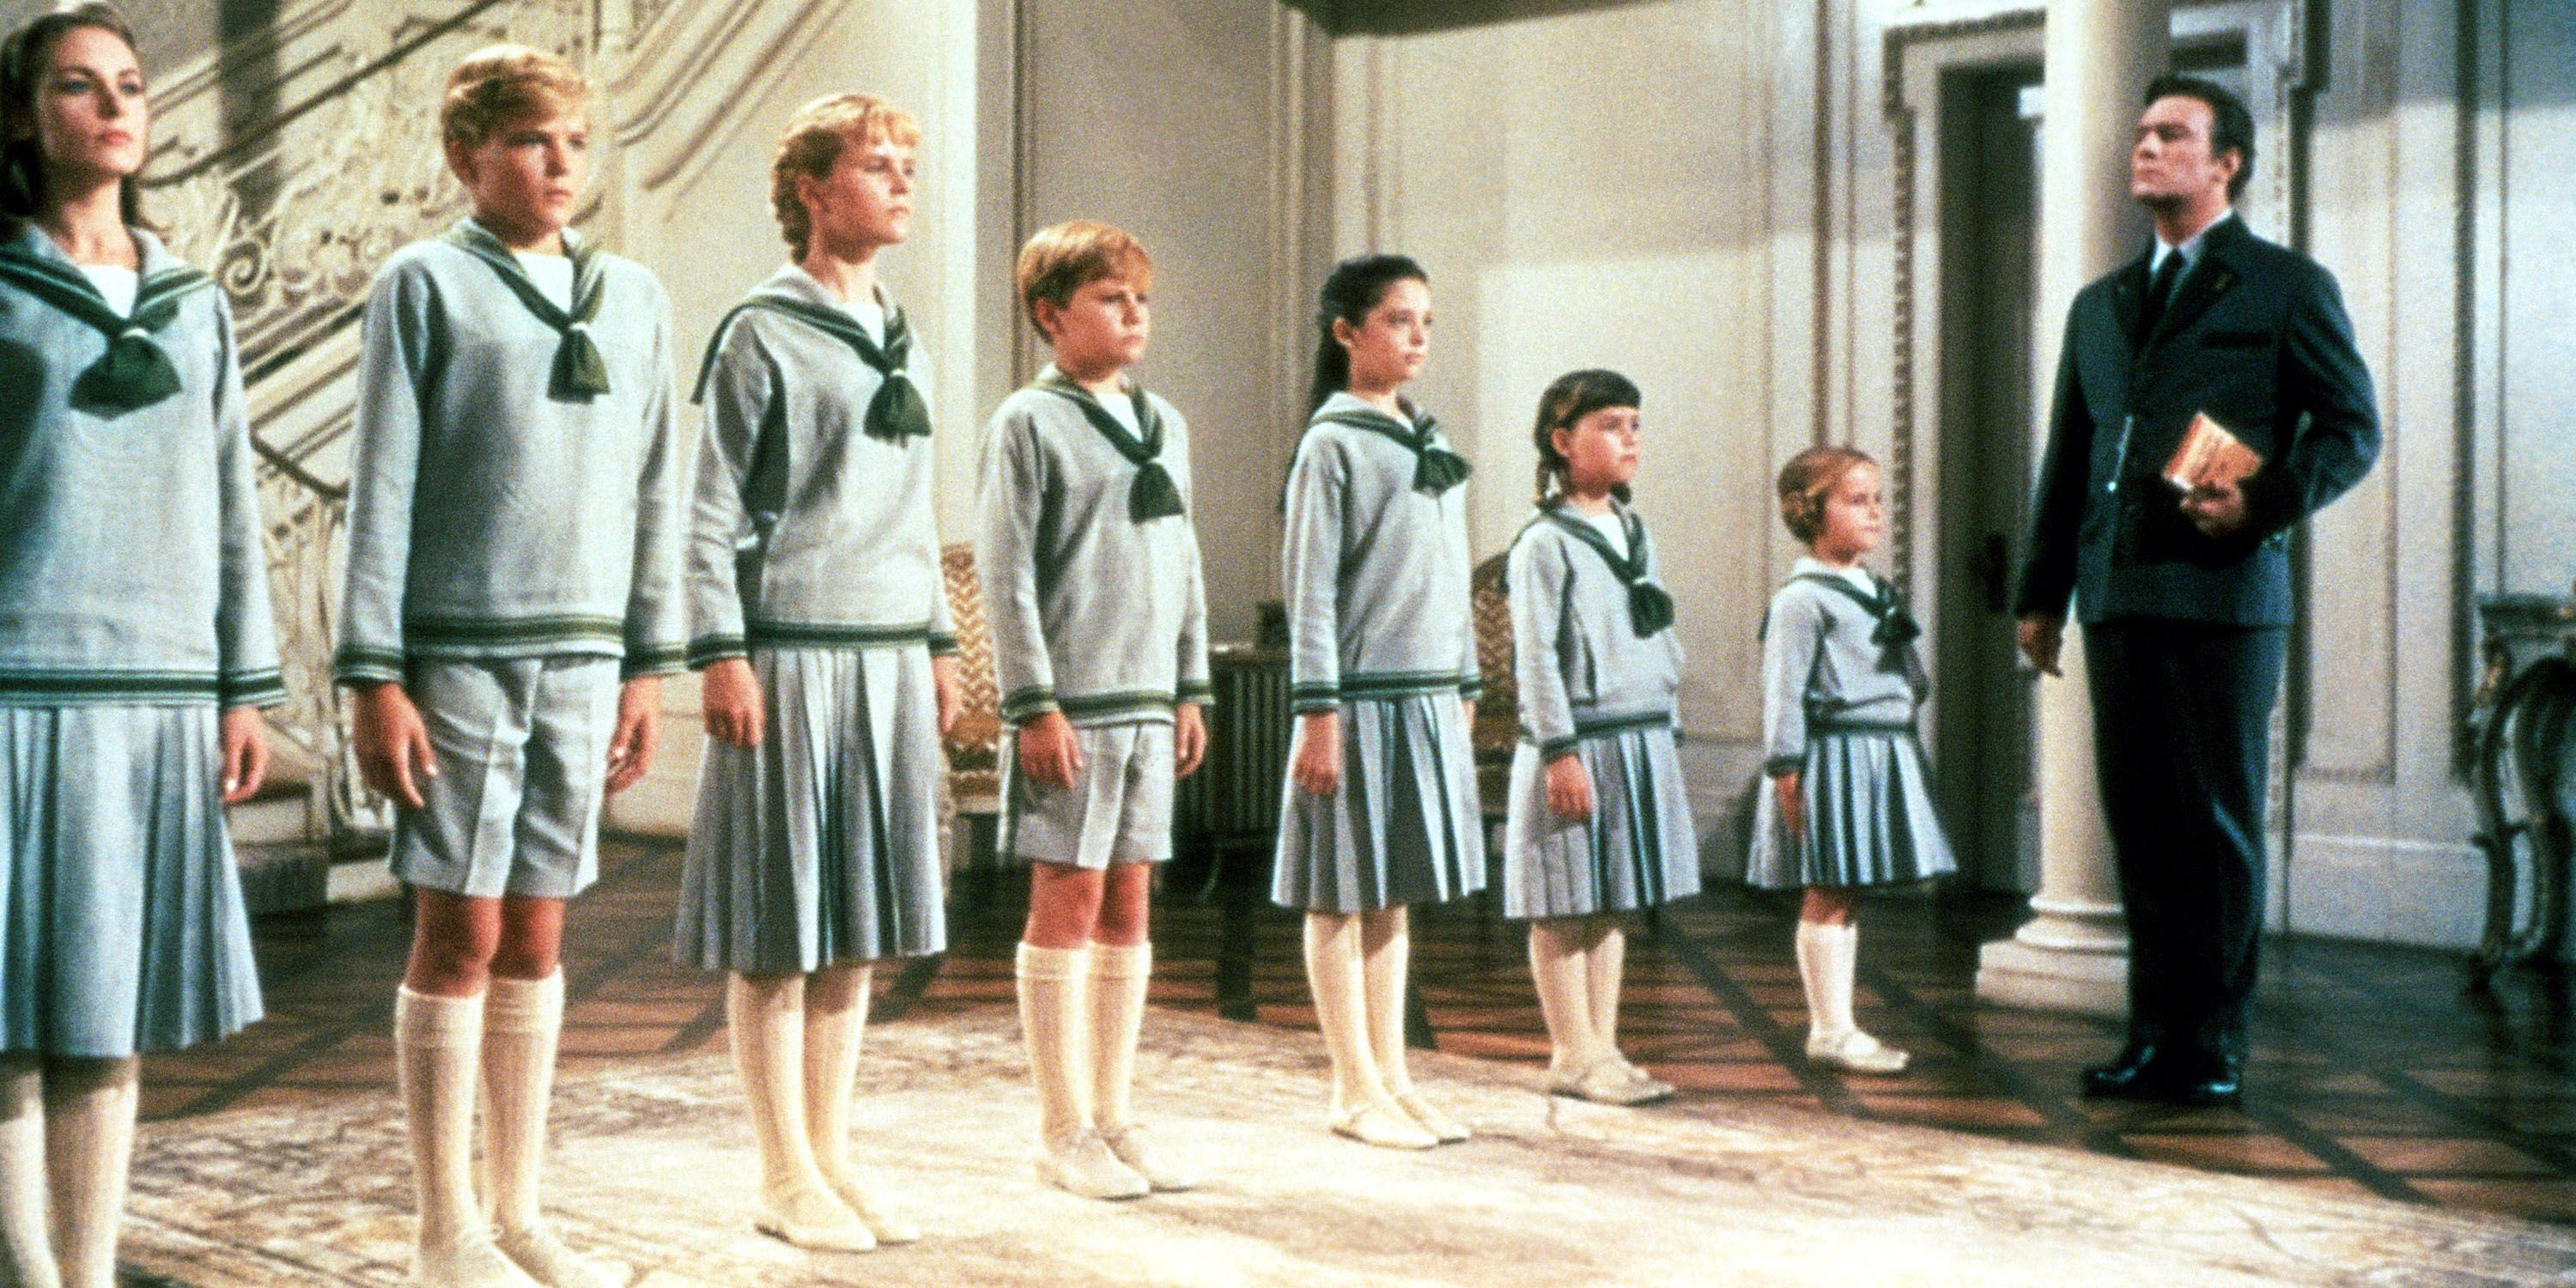 THE SOUND OF MUSIC, from left: Charmian Carr, Nicholas Hammond, Heather Menzies, Duane Chase, Angela Cartwright, Debbie Turner, Kym Karath, 1965. TM and Copyright ©20th Century Fox Film Corp. All rights reserved/ Courtesy: Everett Collection